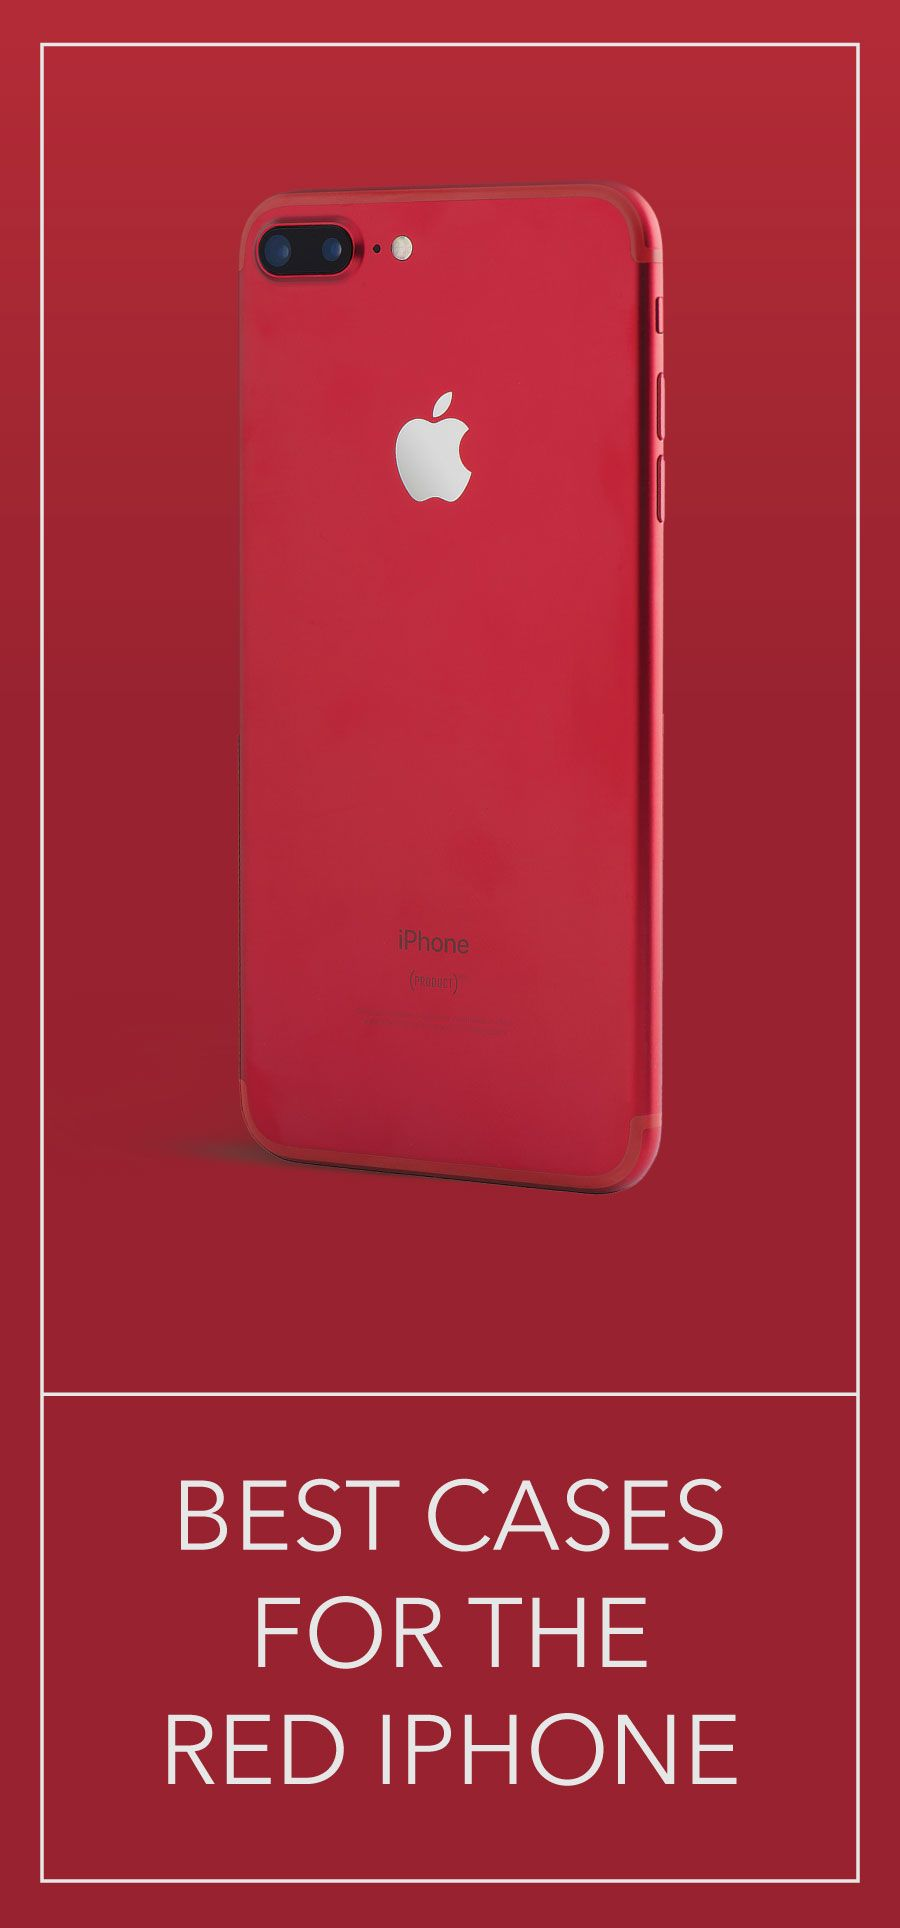 What Is The Best Case For The Red Iphone Iphone Iphone 7 Plus Red Case